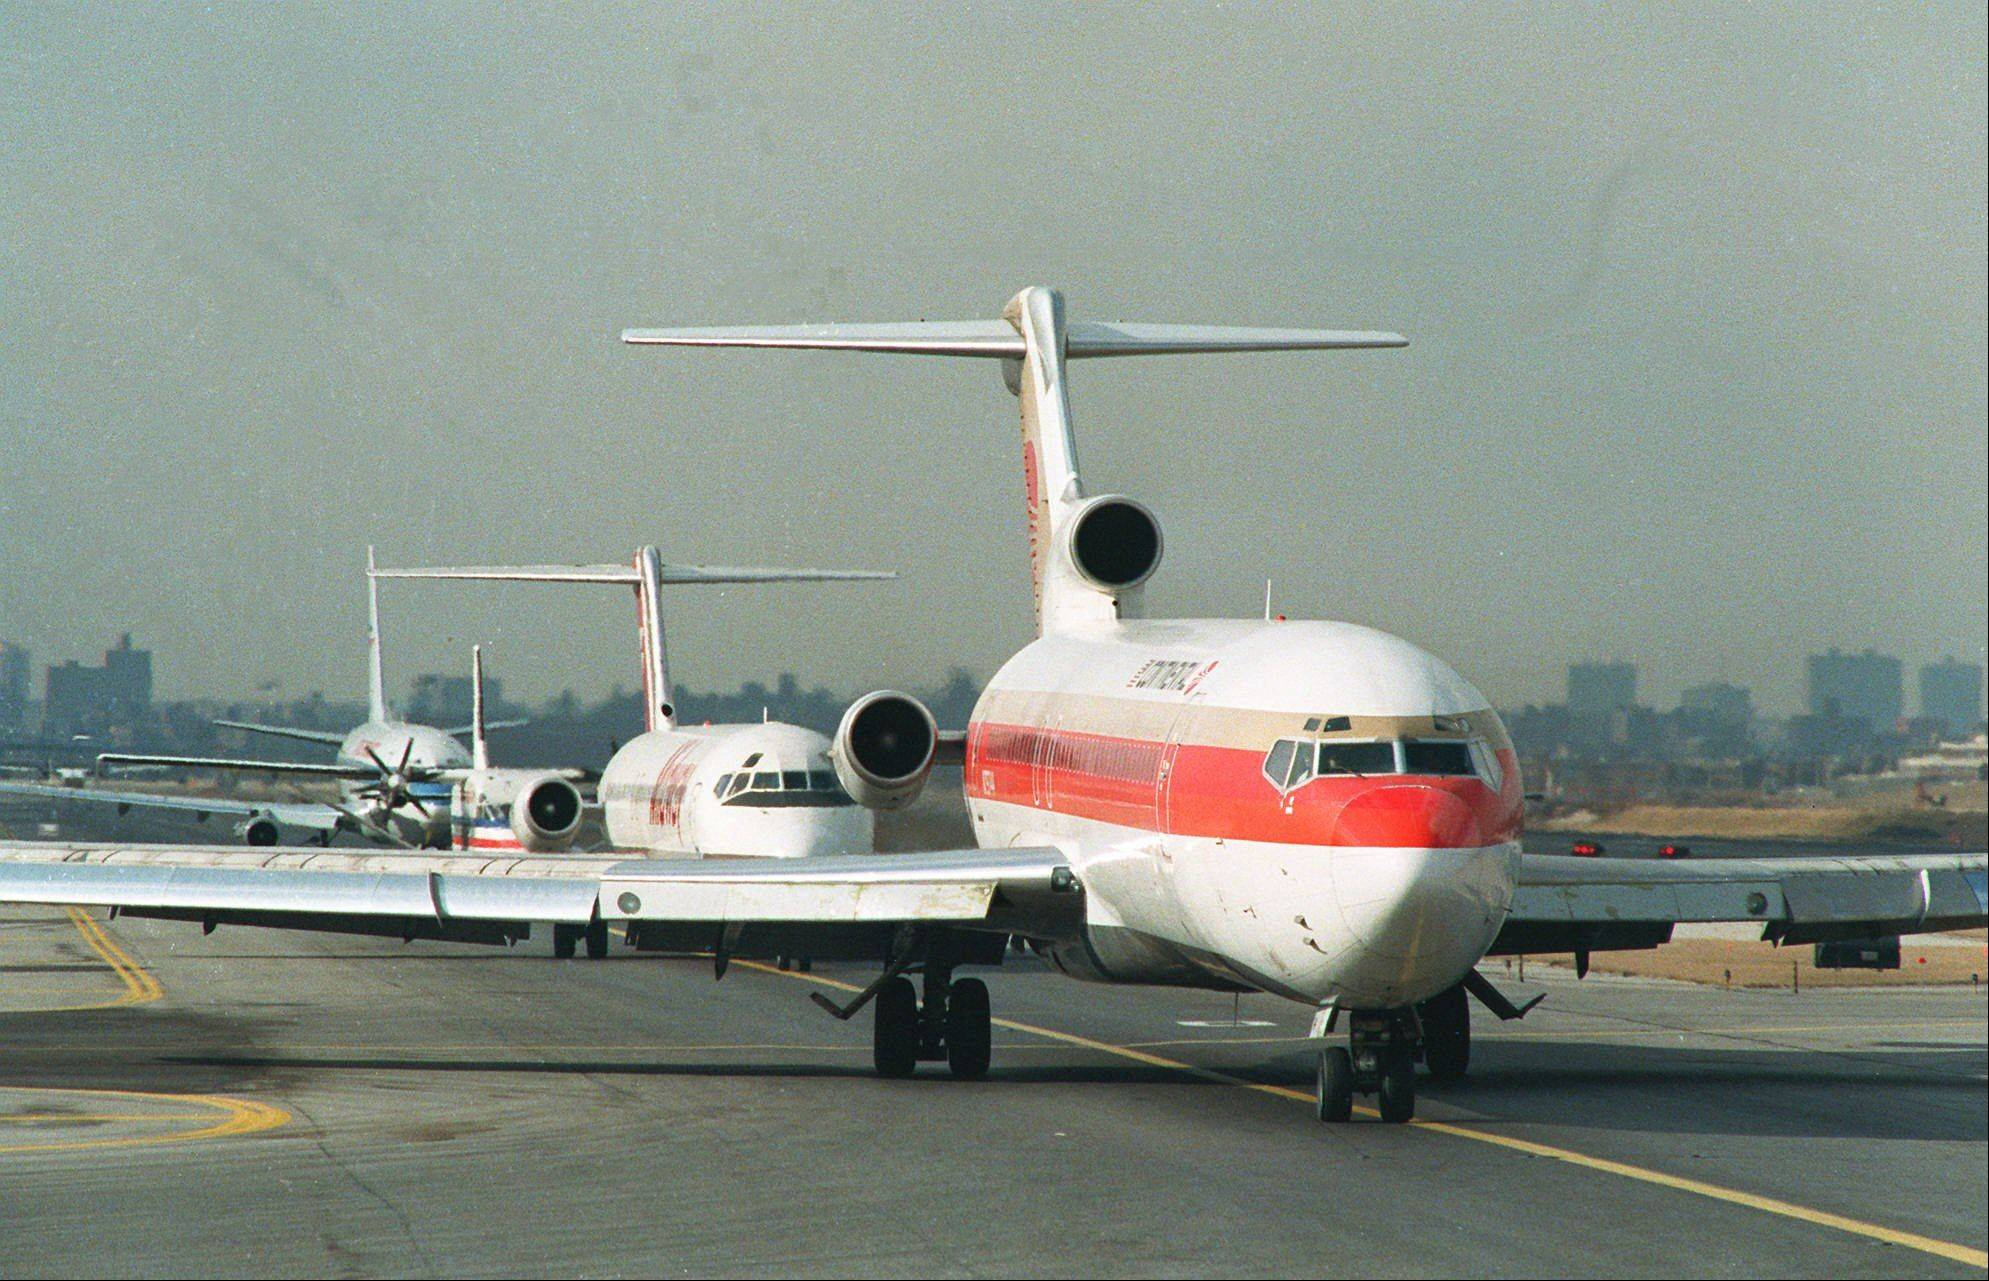 Associated Press File PhotoIn this February 1989 file photo, airplanes line up on the runway of New York's La Guardia Airport cued for takeoff. On Sunday, Feb. 17, 2013, New York Governor Andrew Cuomo said that LaGuardia Airport is set to receive $37.5 million in federal and state funds for five projects that will protect the runways and flood barrier berms breached by Supertsorm Sandy.